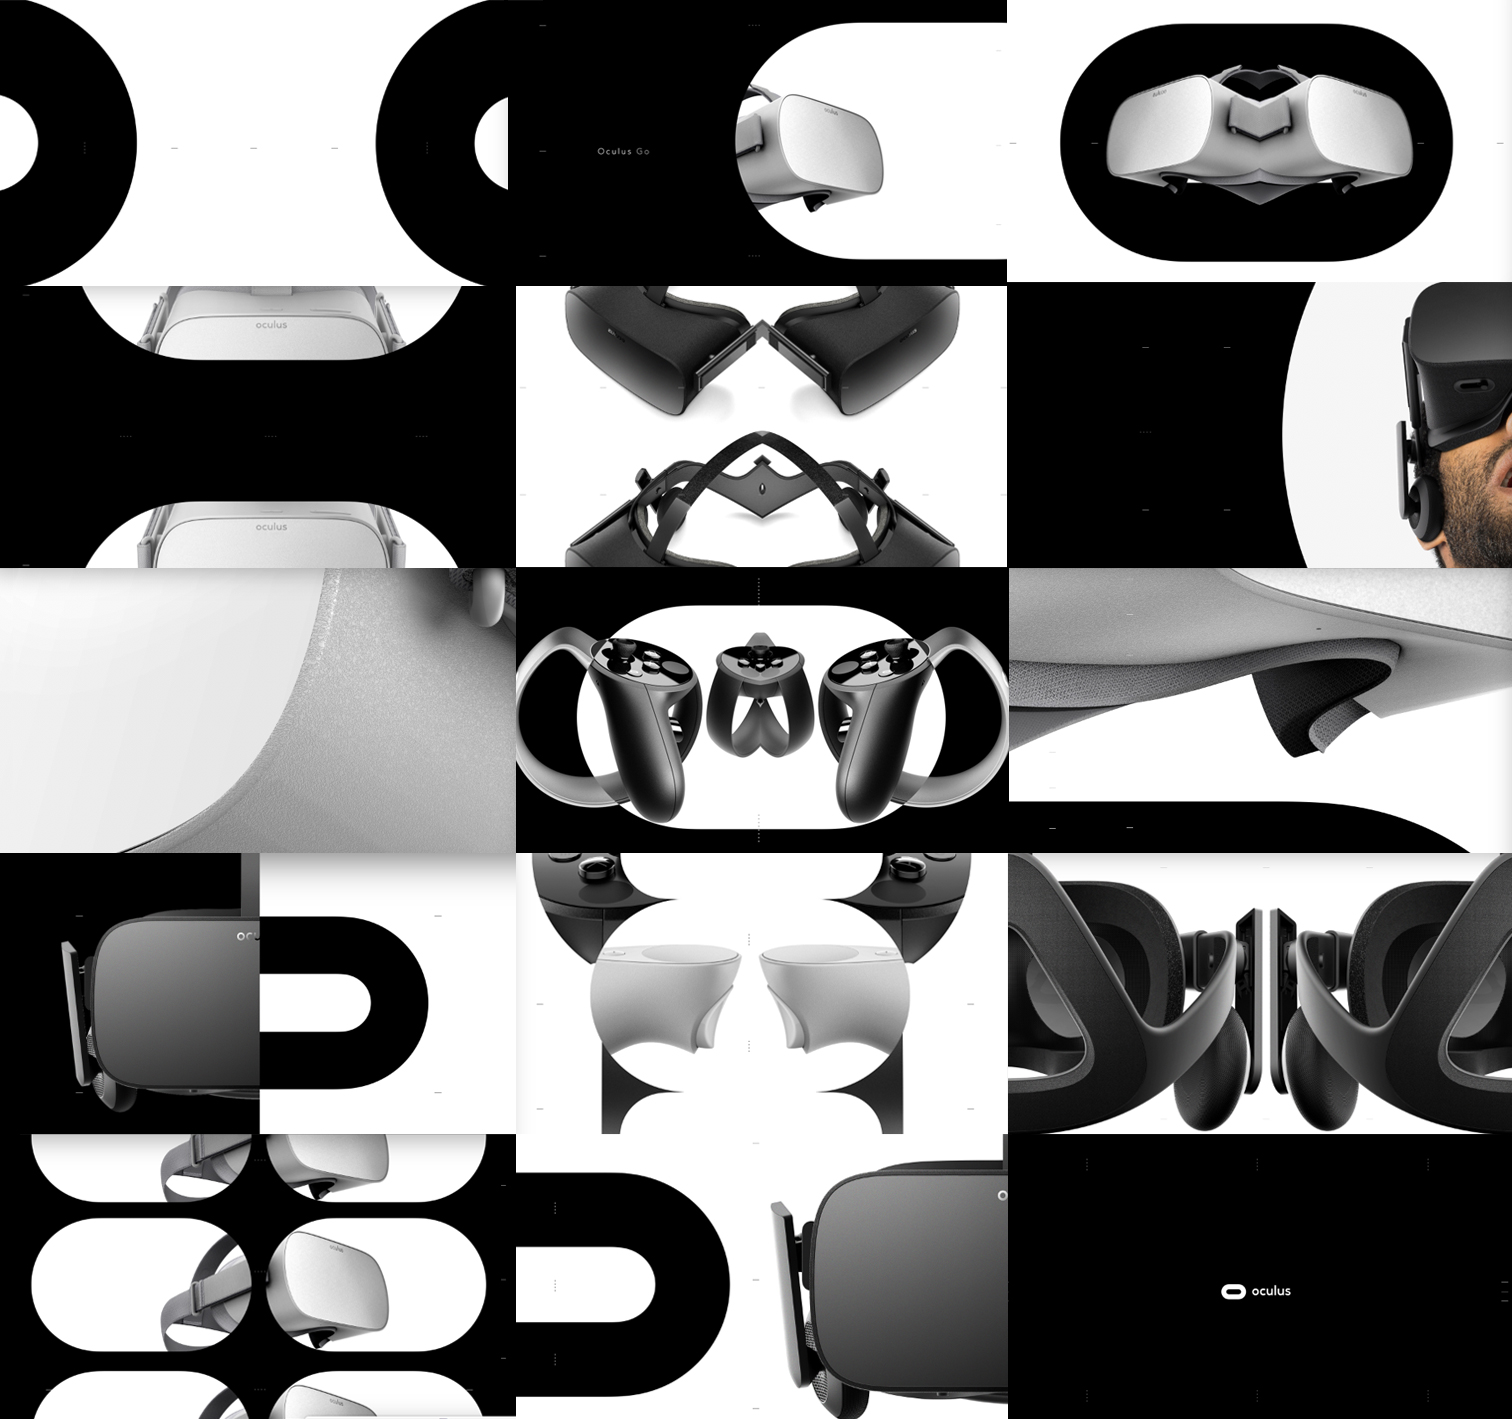 Occulus_Web_COLLECTION.jpg